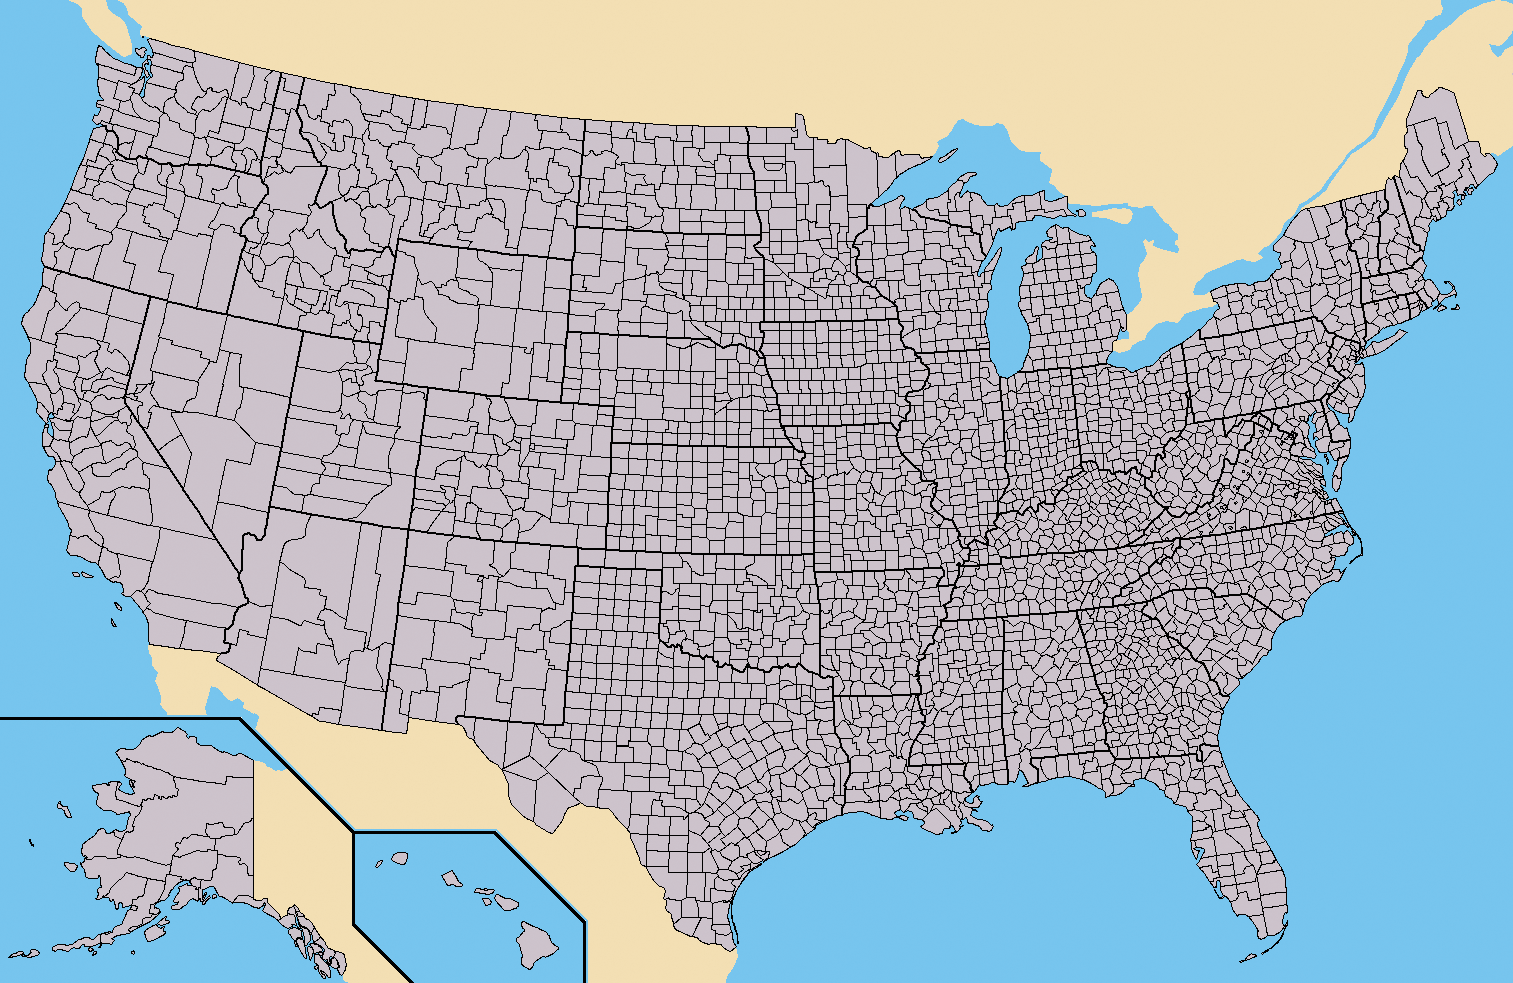 Us County Map File:Map of USA with county outlines.png   Wikipedia Us County Map